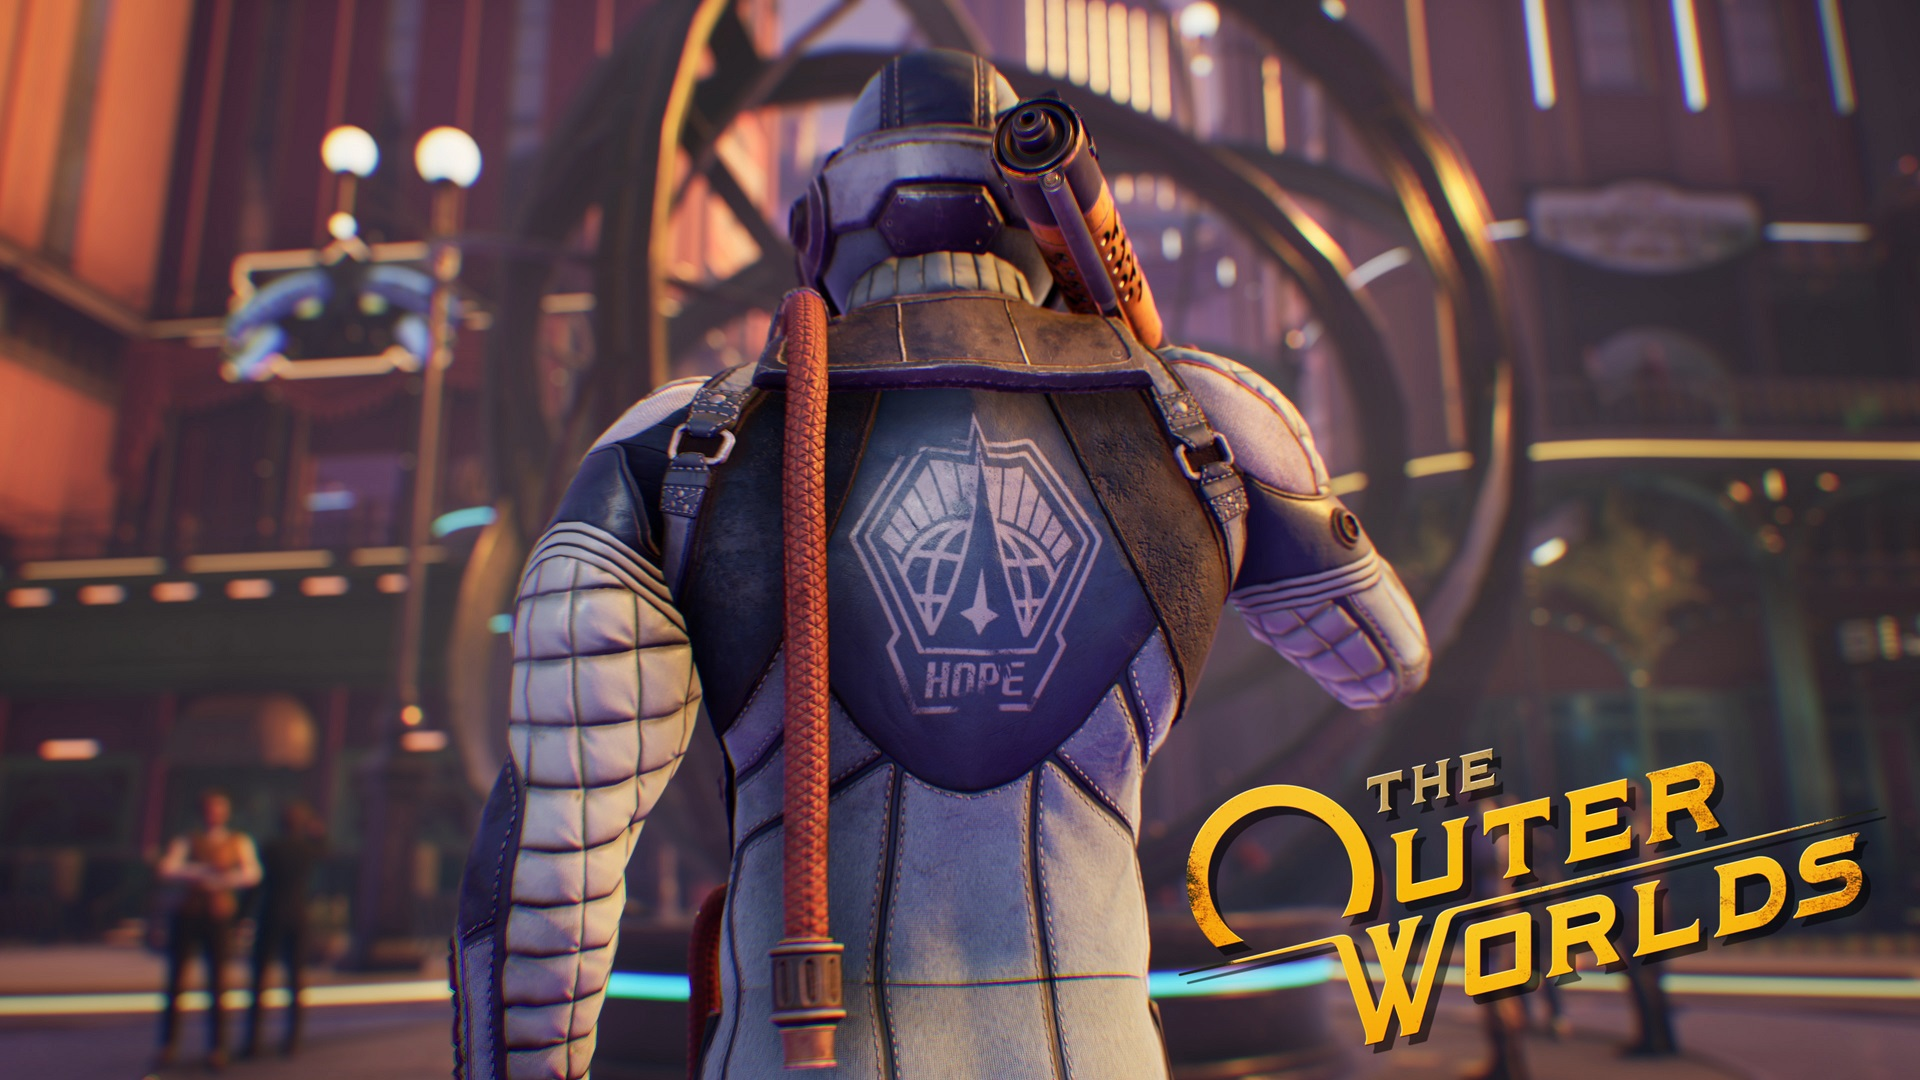 The Outer Worlds wants to win over Fallout: New Vegas fans screenshot